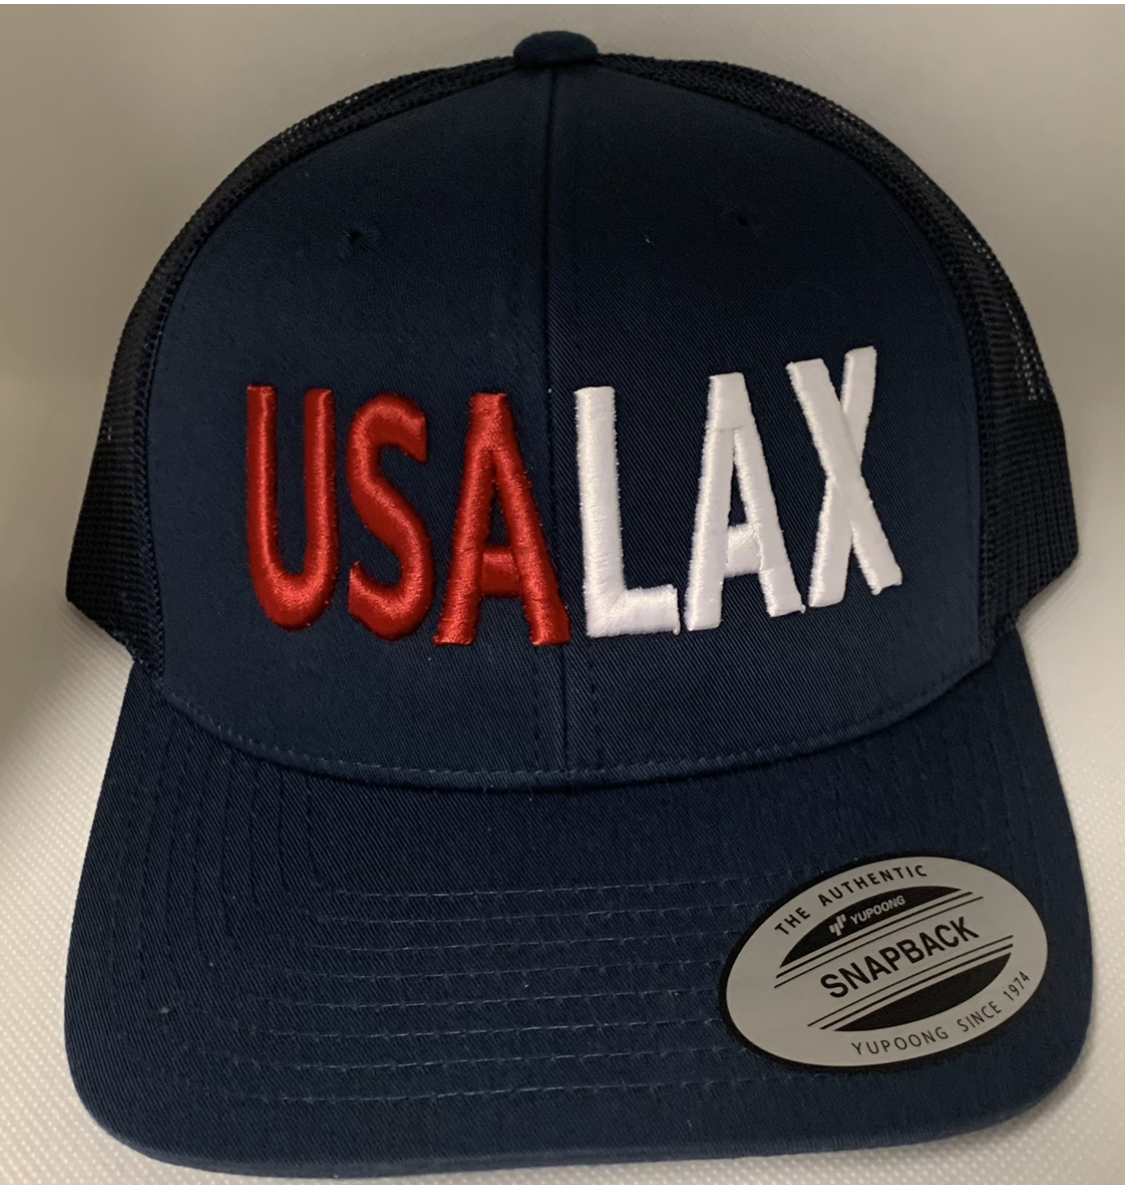 In honor of National Hat day!  Stop in and see our selection of quality SnapBack and Trucker hats #nationalhatday #lacrosse